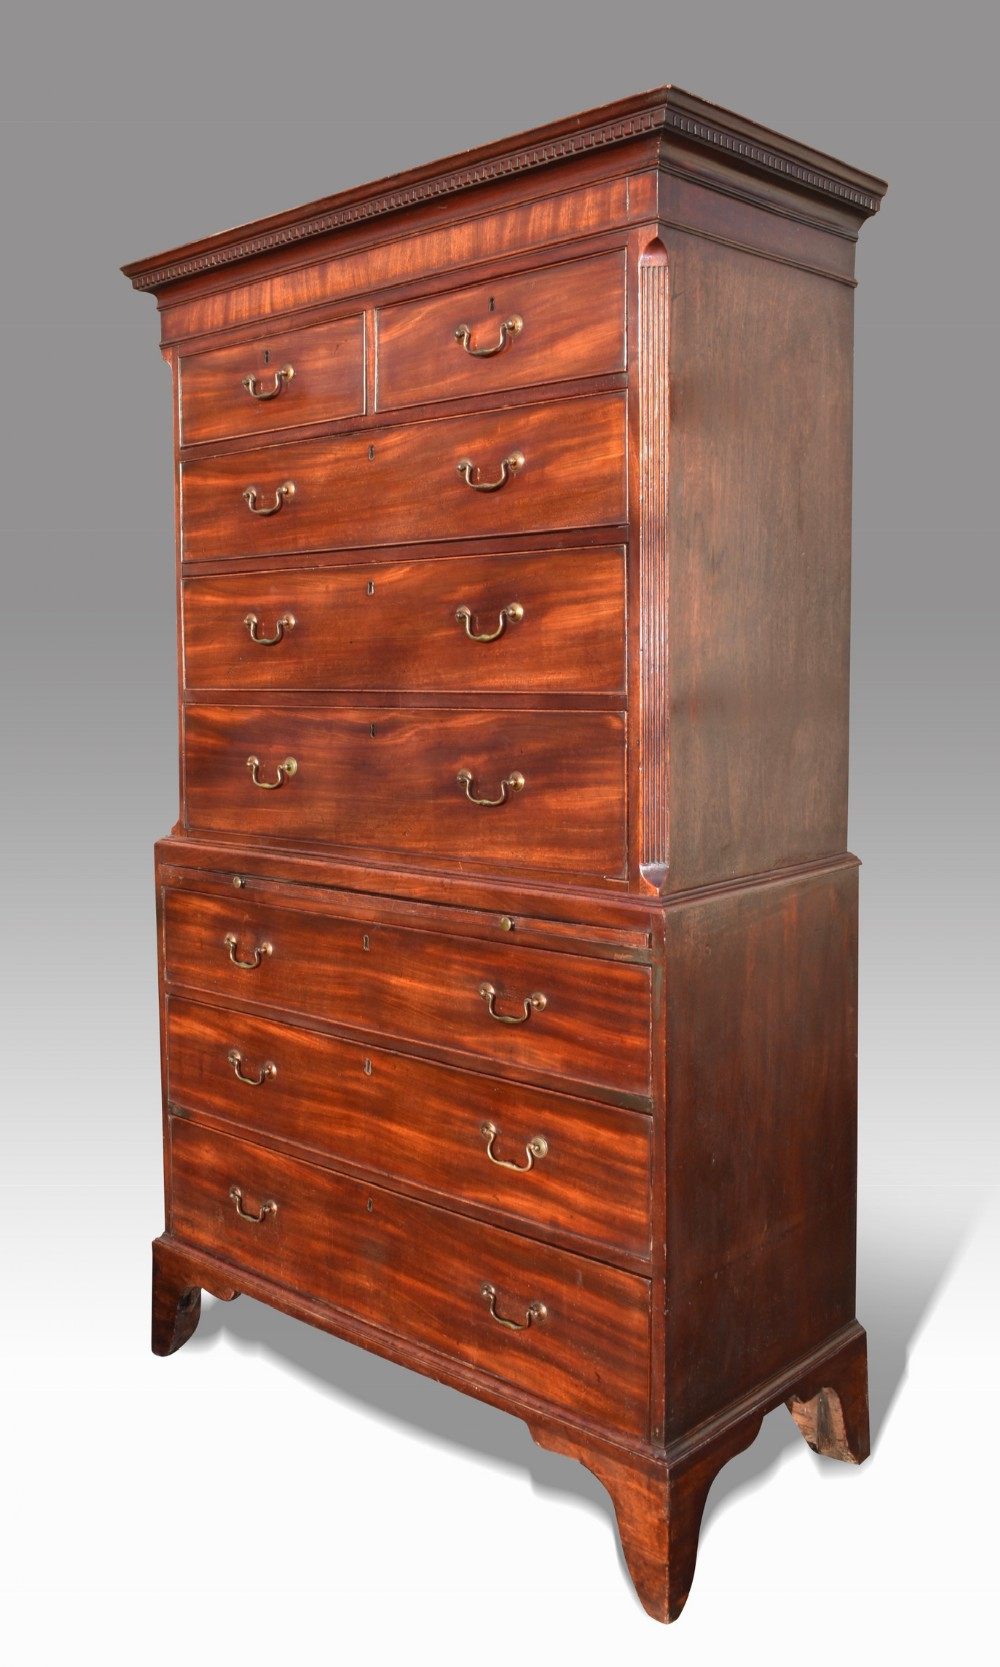 a fine chippendale period mahogany tallboy chest on chest